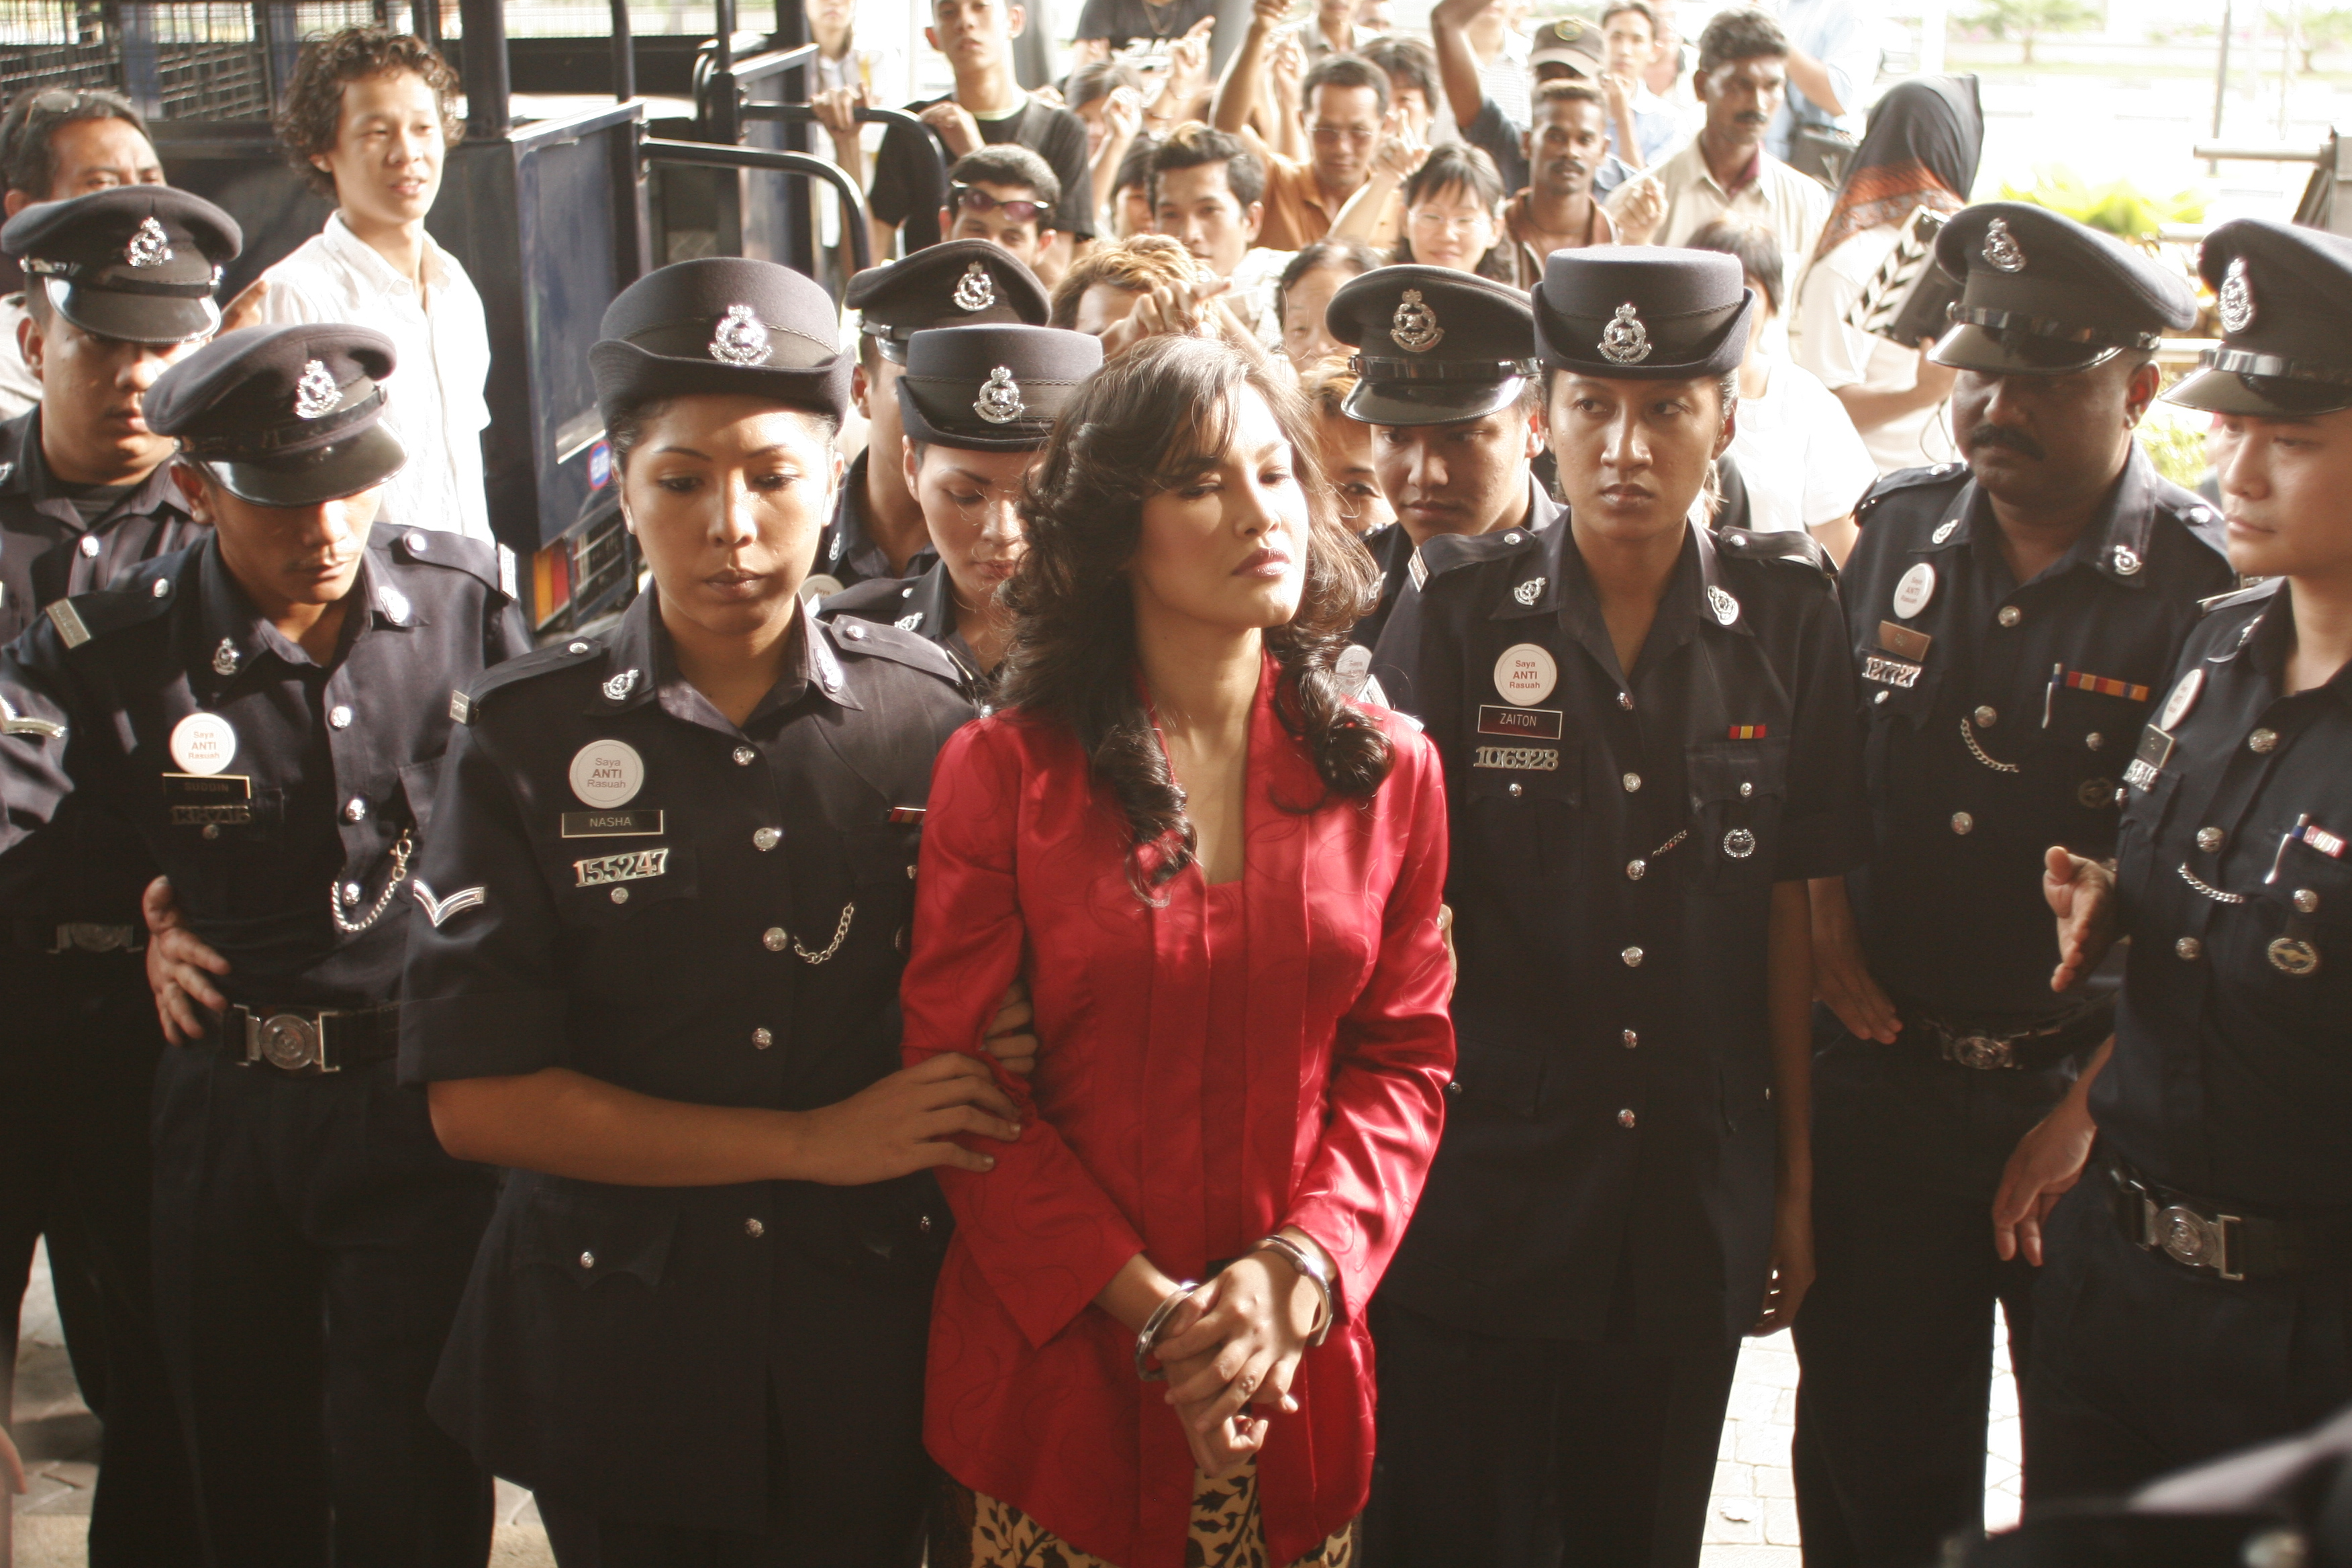 Diana donning her iconic red kebaya for a court hearing.